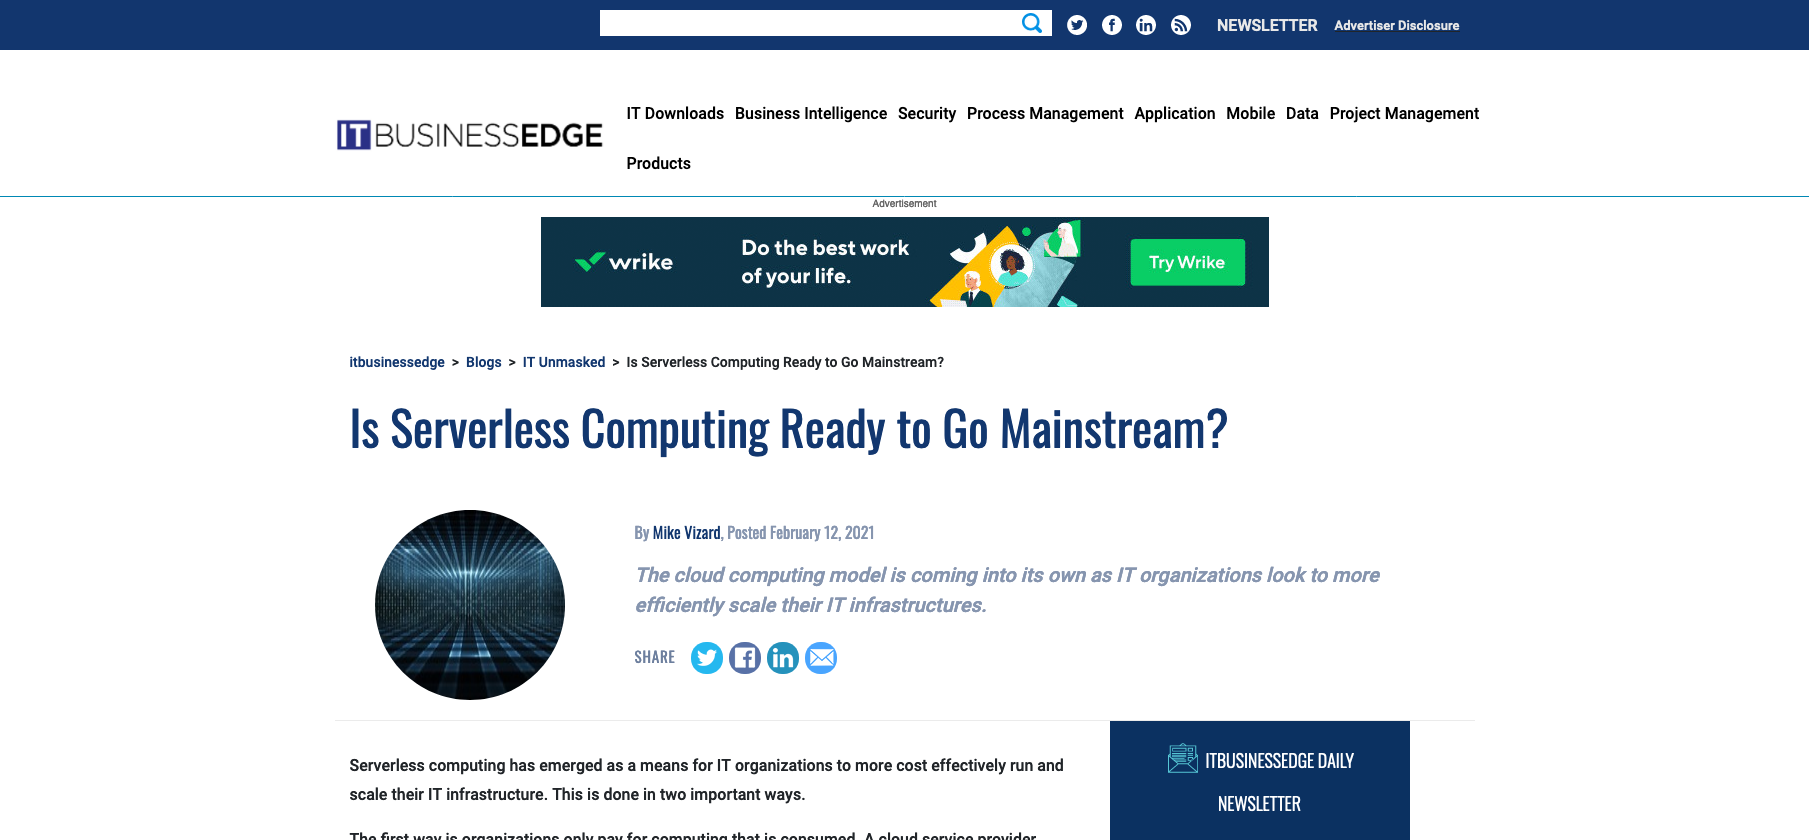 ITBusinessEdge - Is Serverless Computing Ready to Go Mainstream?